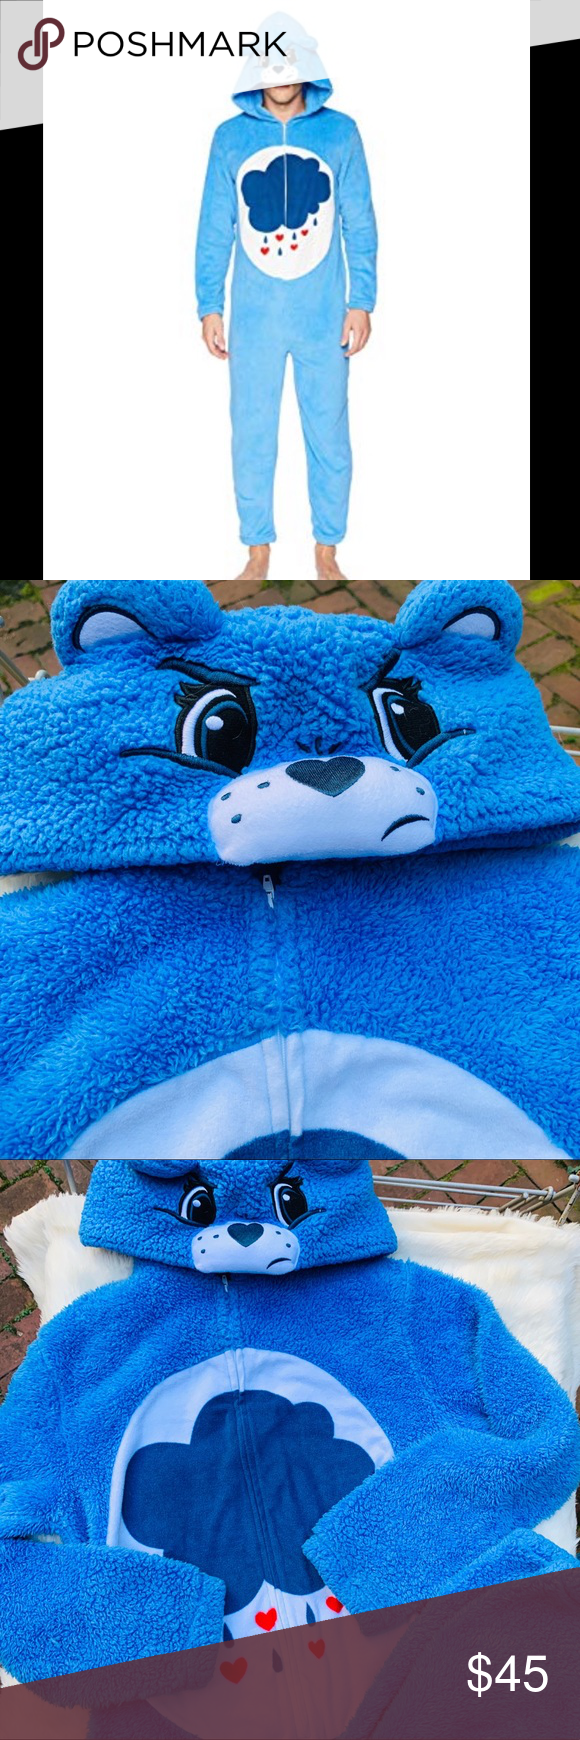 Care Bears grumpy bear union suit onesie Care Bears onesie union suit  Unisex  Size s (fits standard size men's S) Worn one time as Halloween costume  Cozy fleece onesie, soft and plushy feel Cozy and warm  Grumpy care bear suit  100% poly Long sleeves, zipper closure, non footed pants  Perfect for themed party, sleepover, Halloween Intimates & Sleepwear Pajamas #carebearcostume Care Bears grumpy bear union suit onesie Care Bears onesie union suit  Unisex  Size s (fits standard size men's S) #carebearcostume